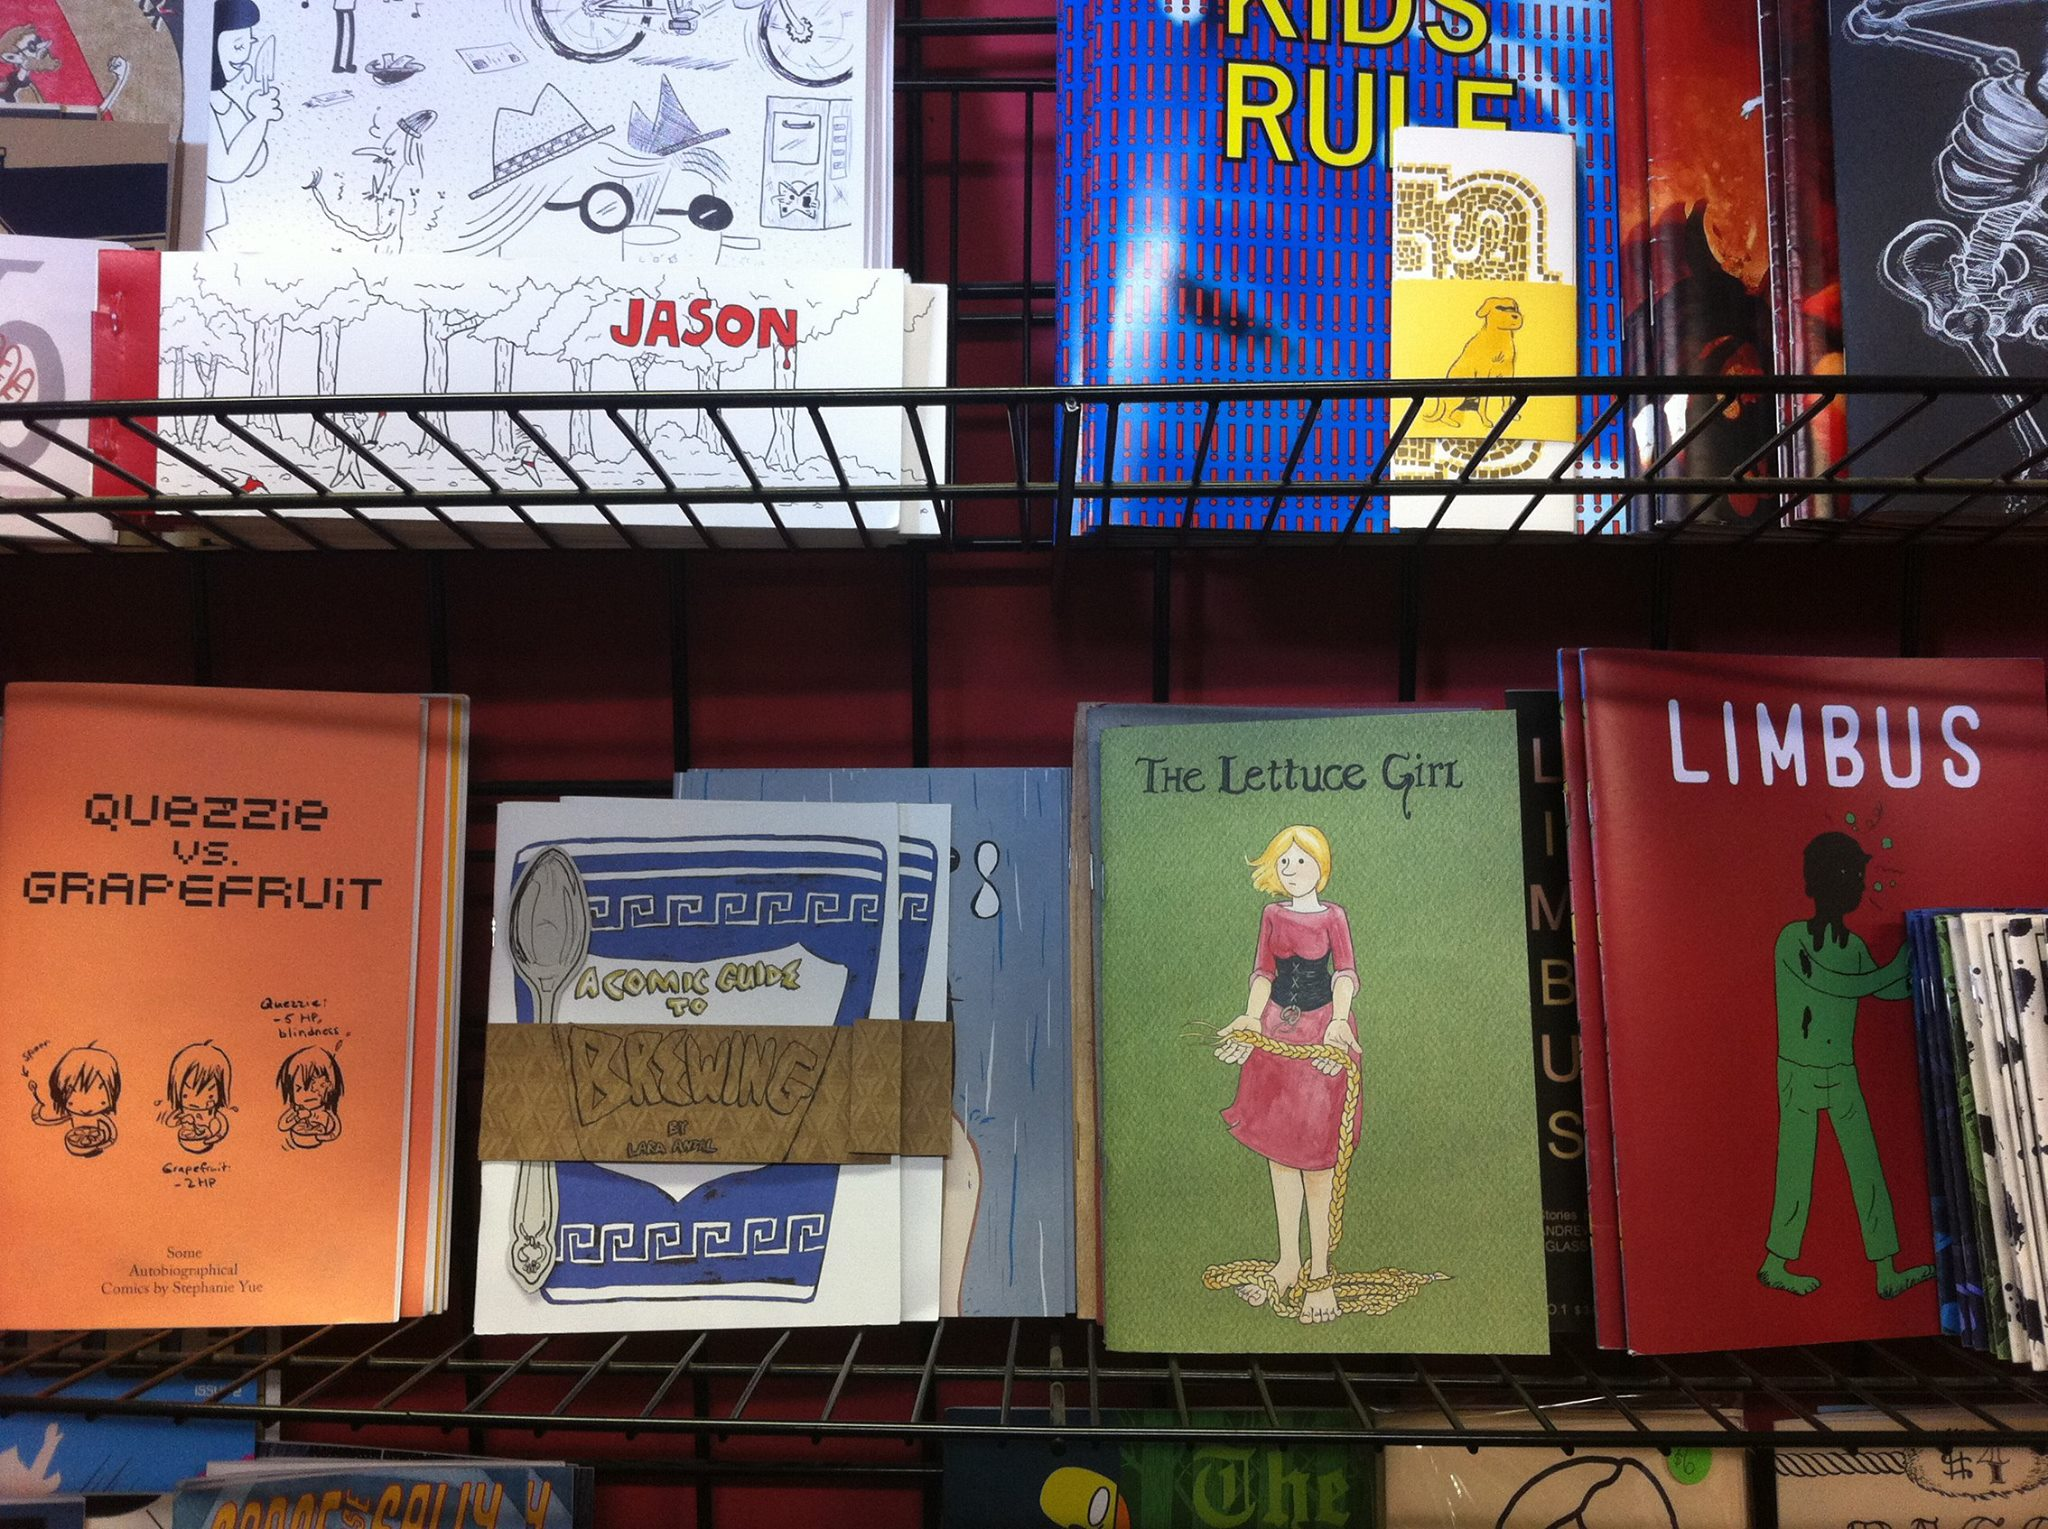 The Lettuce Girl Pt. IV  sitting on a shelf all the way out in Chicago Comics. Photo Credit: Dave Kelly